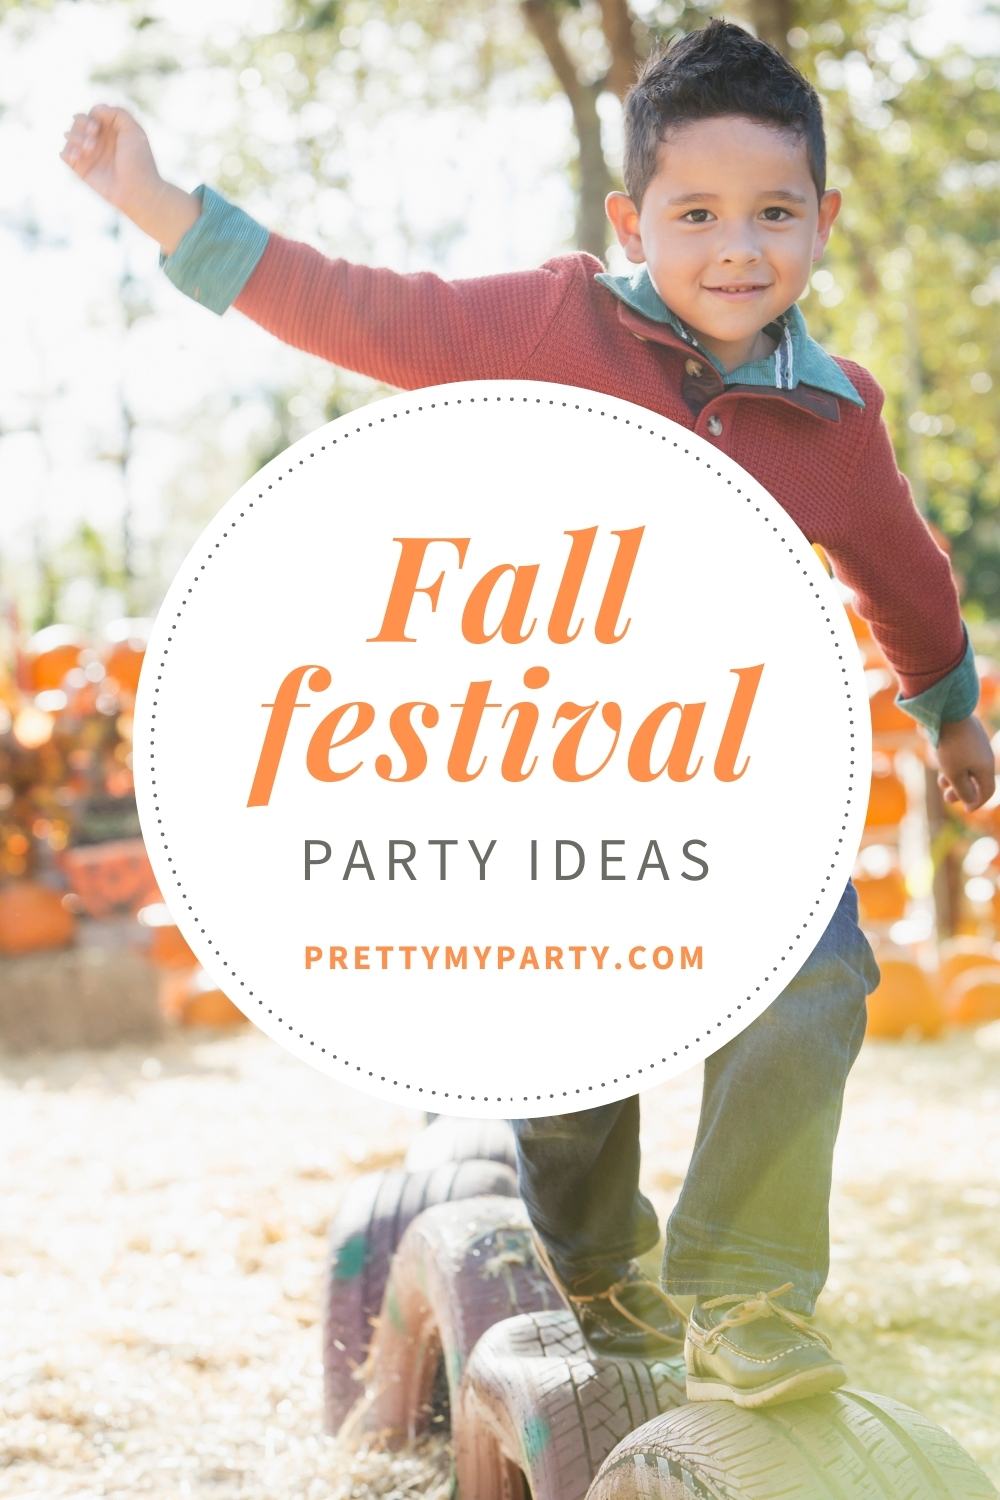 Fall Festival Party Ideas on Pretty My Party